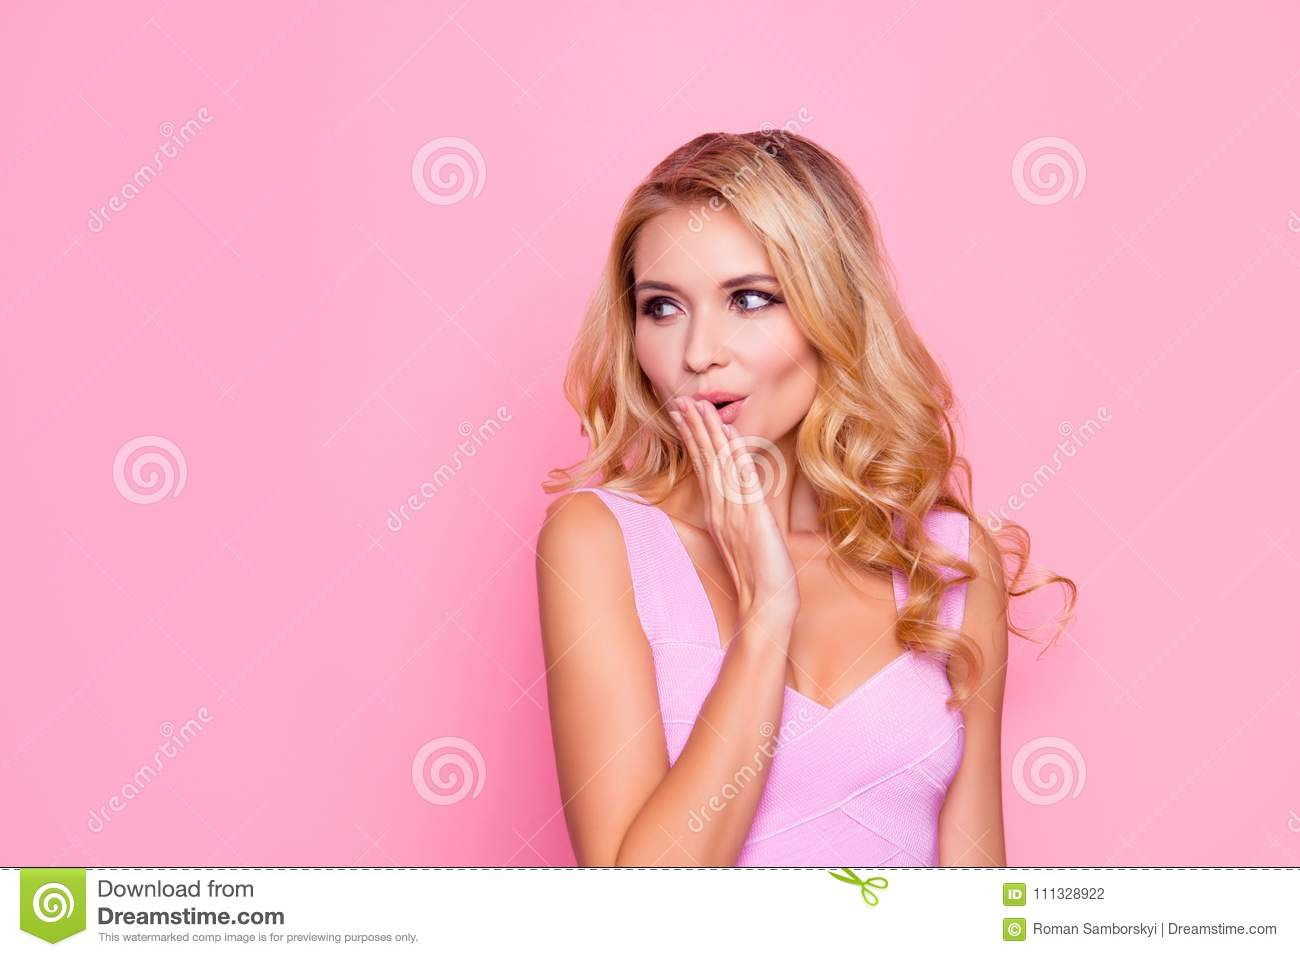 Oops! Close up portrait of sexy, beautiful, impressed, amazed blonde girl holding her hand near mouth, looking to the side on pink